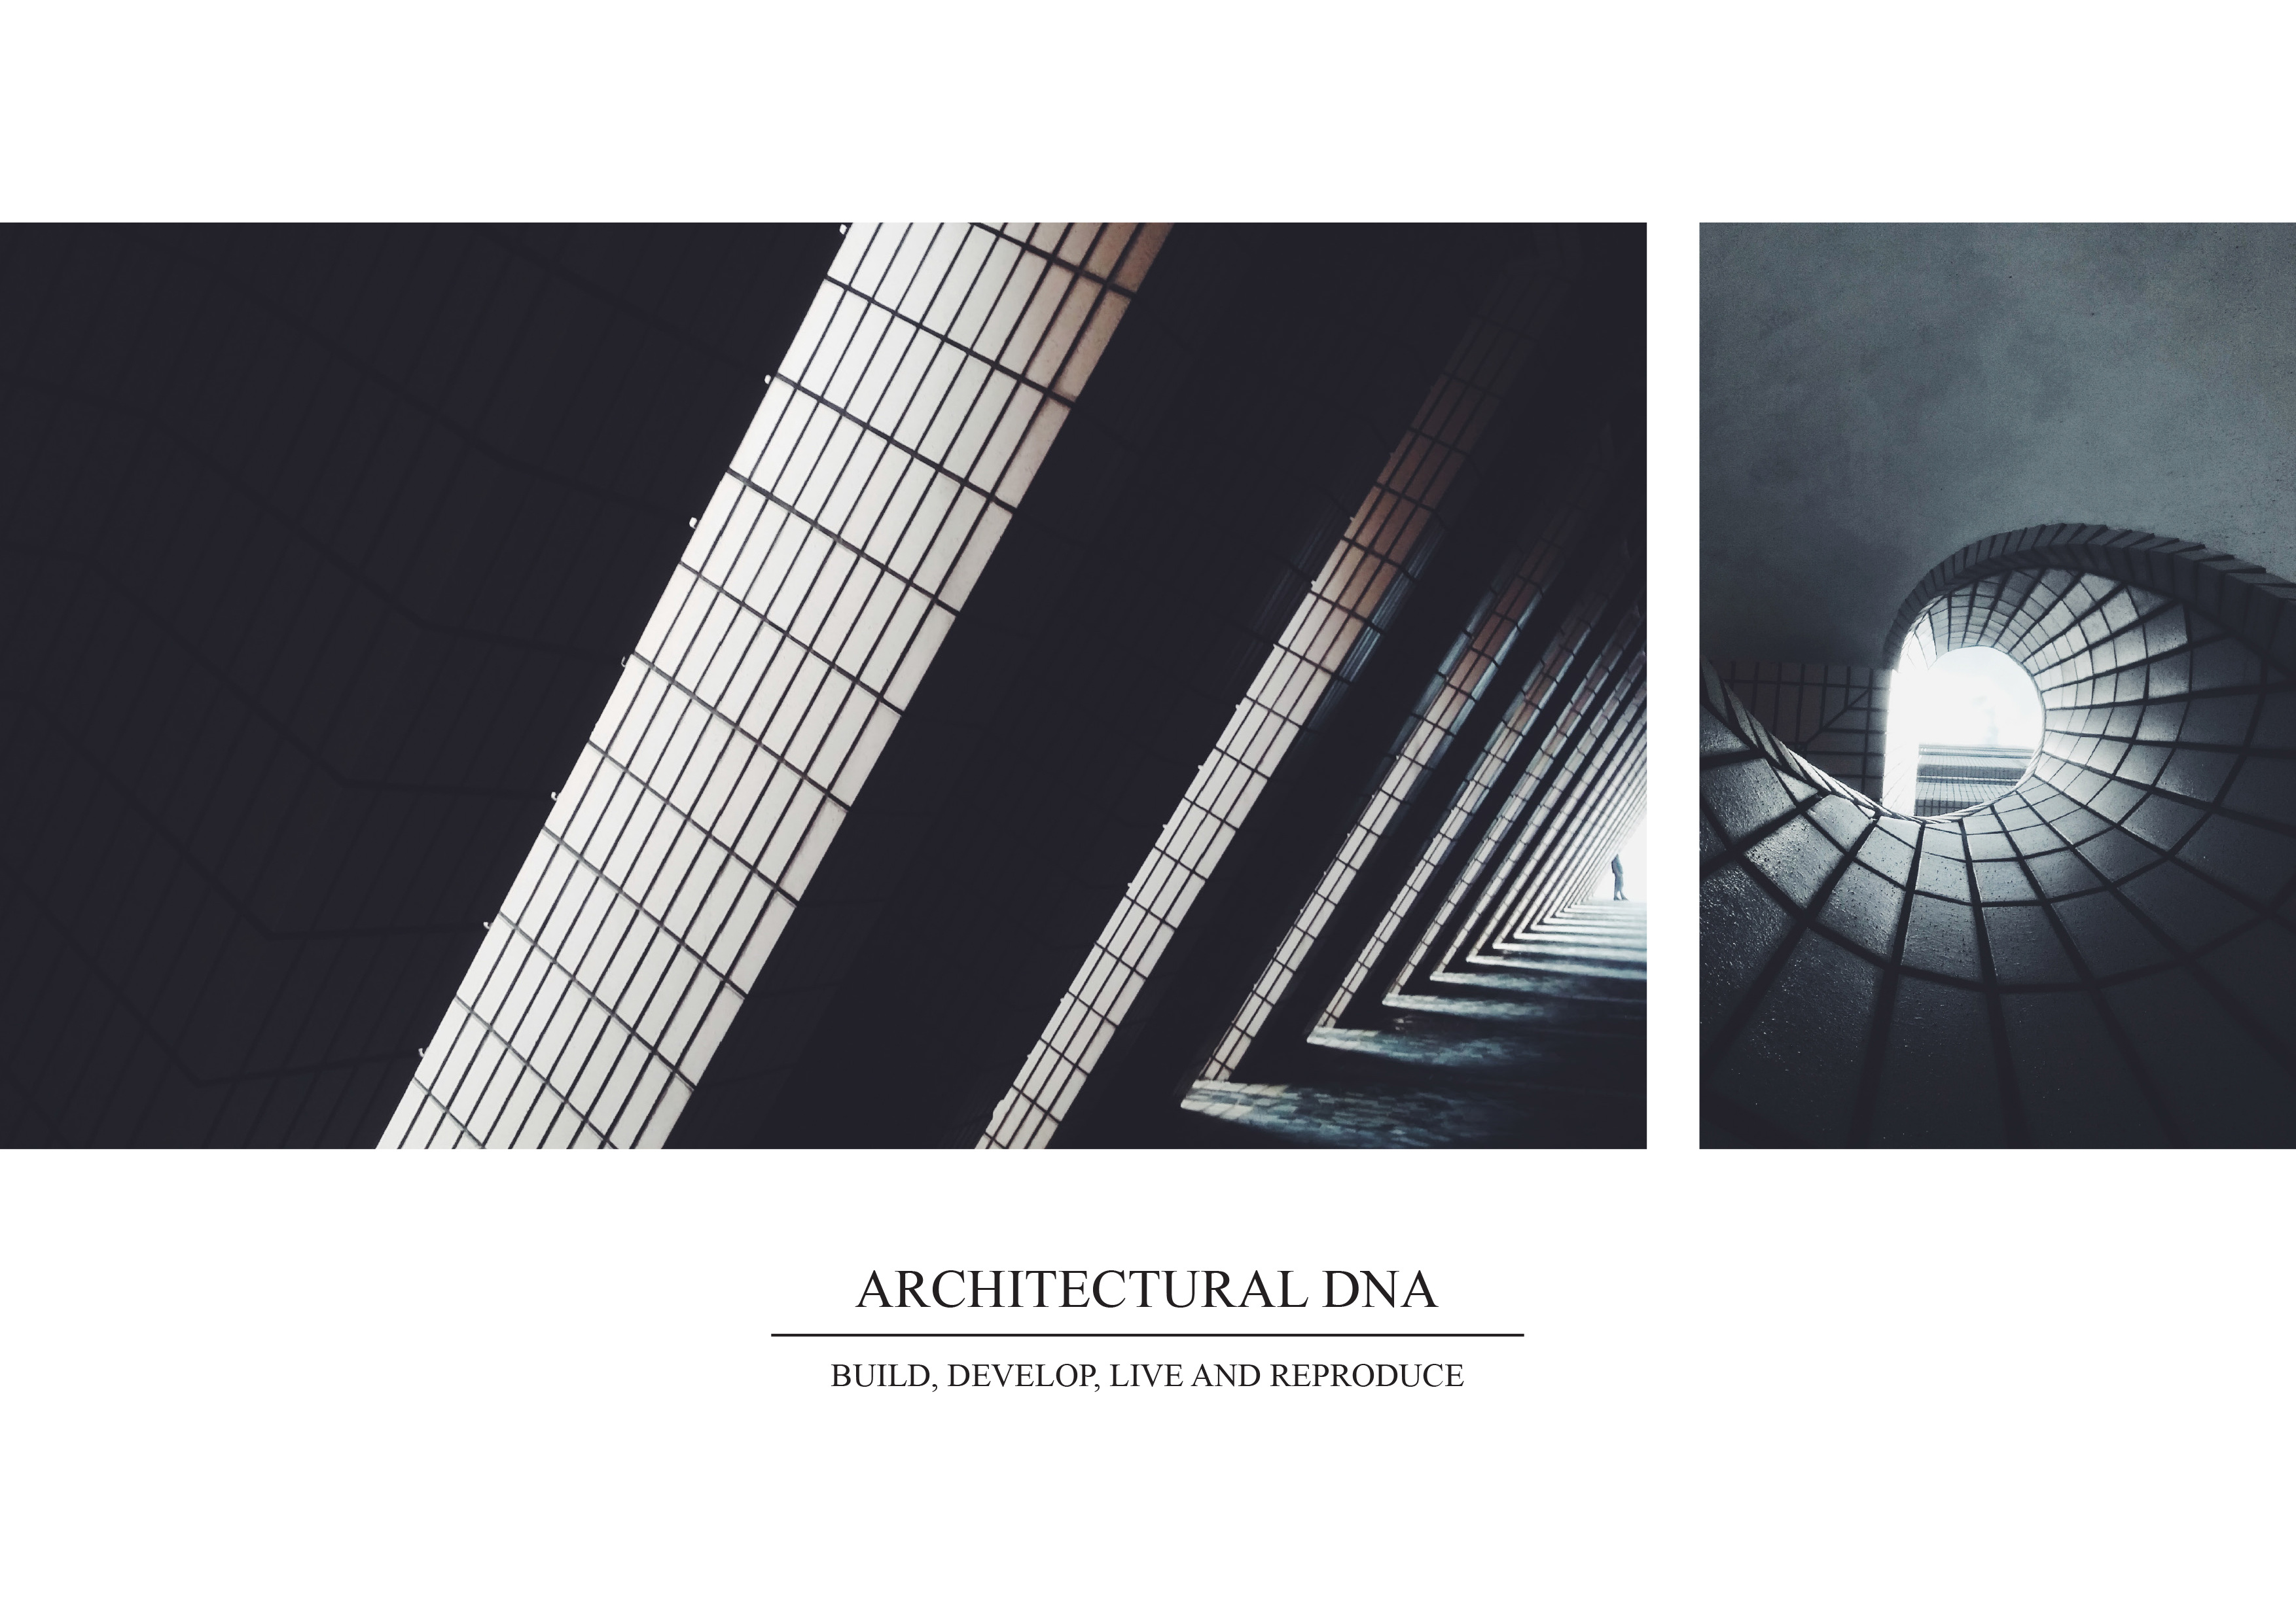 00_Architectural DNA_Montage